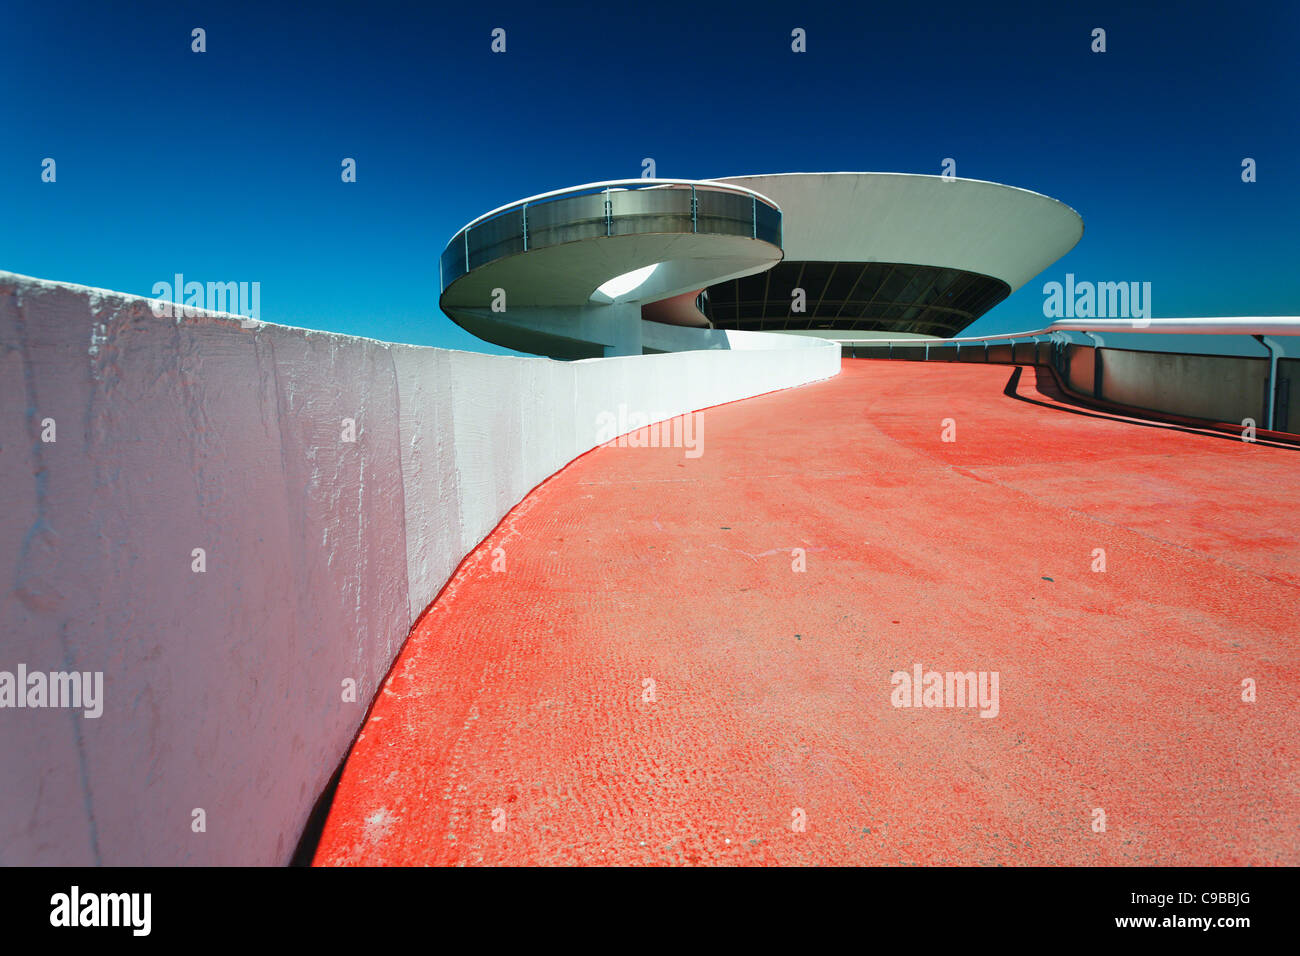 Low Angle View of a Circular Shape Modern Building, Contemporary Art Museum, Niteroi, Brazil - Stock Image